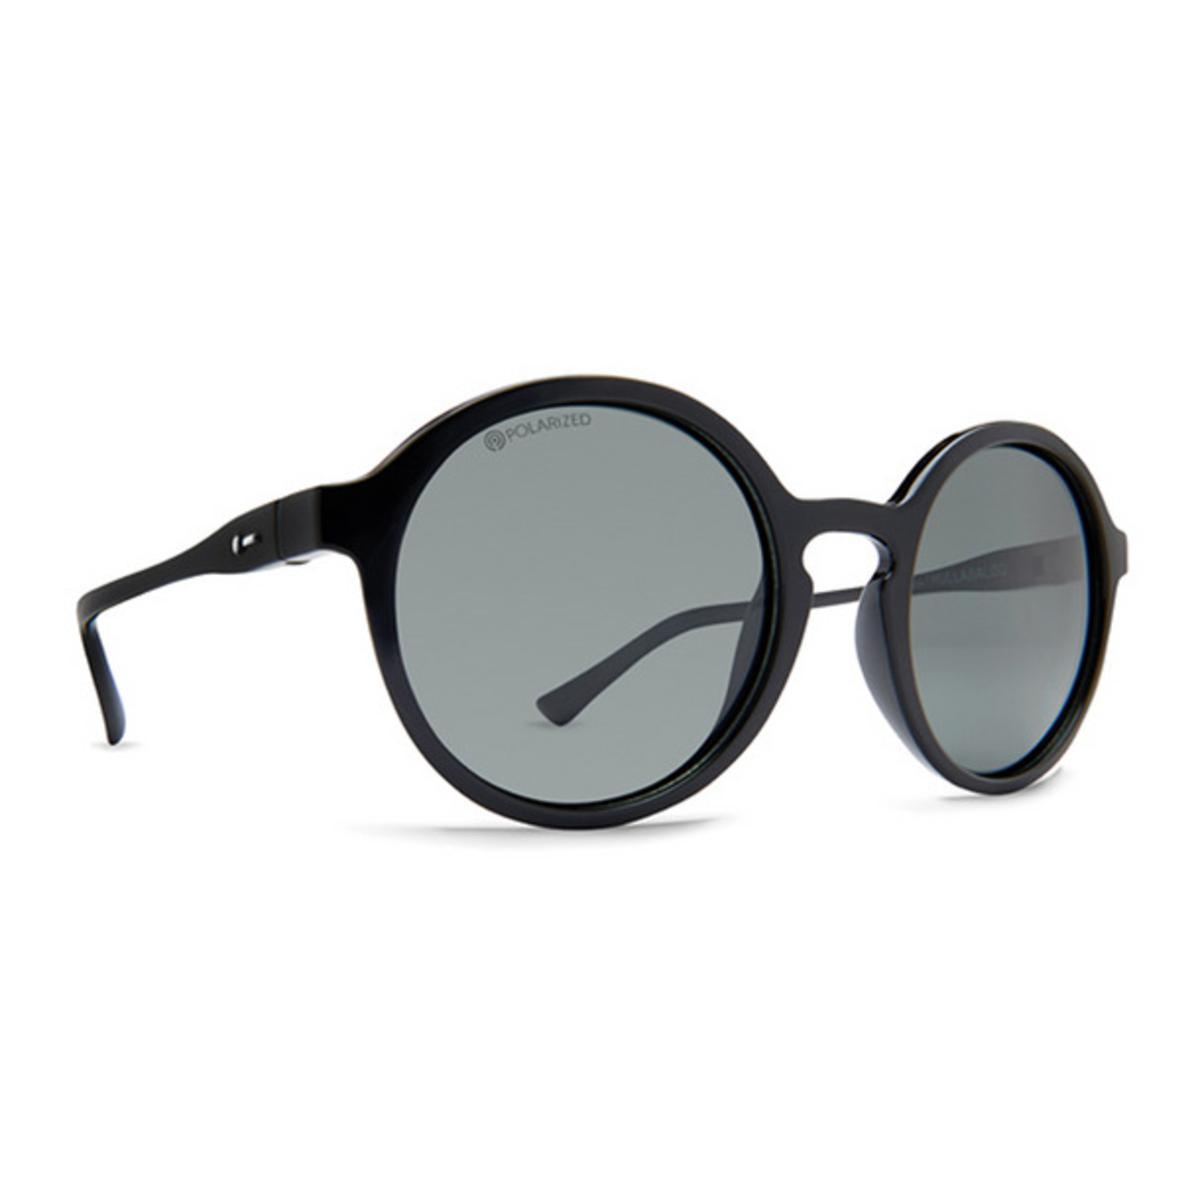 Dot Dash Hullabaloo Sunglasses